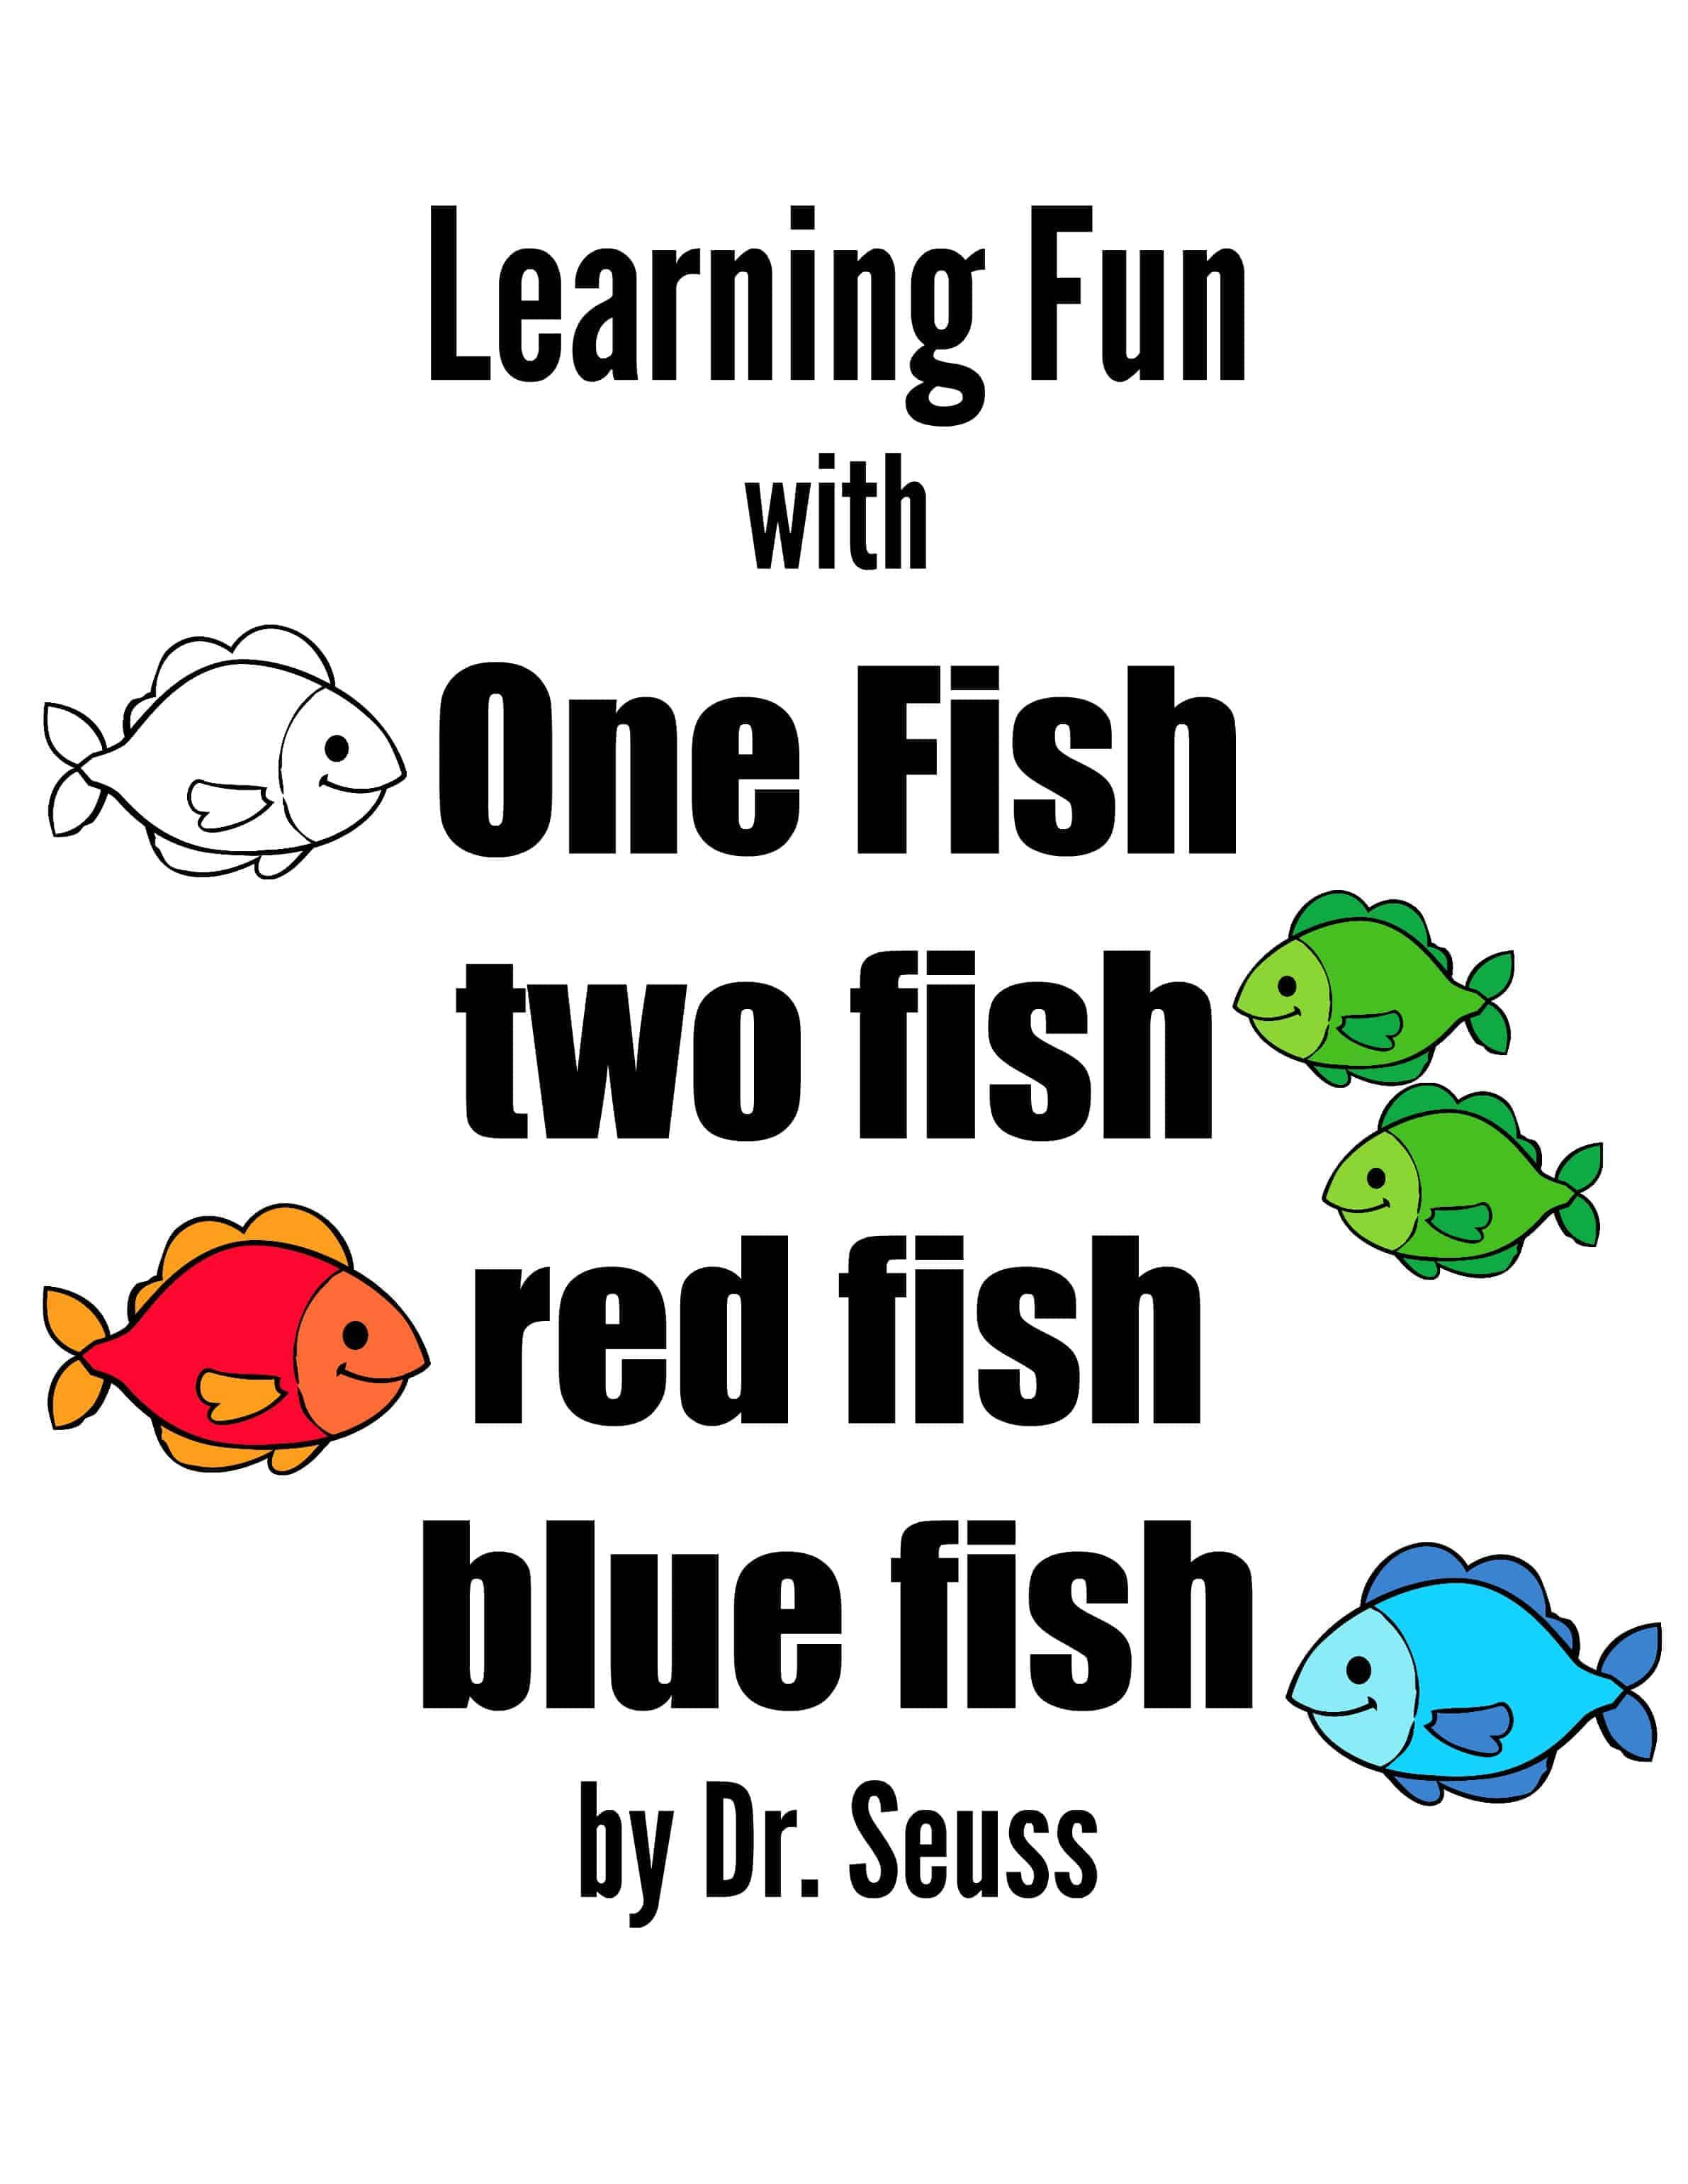 Learning fun with one fish two fish by dr seuss rock for One fish two fish